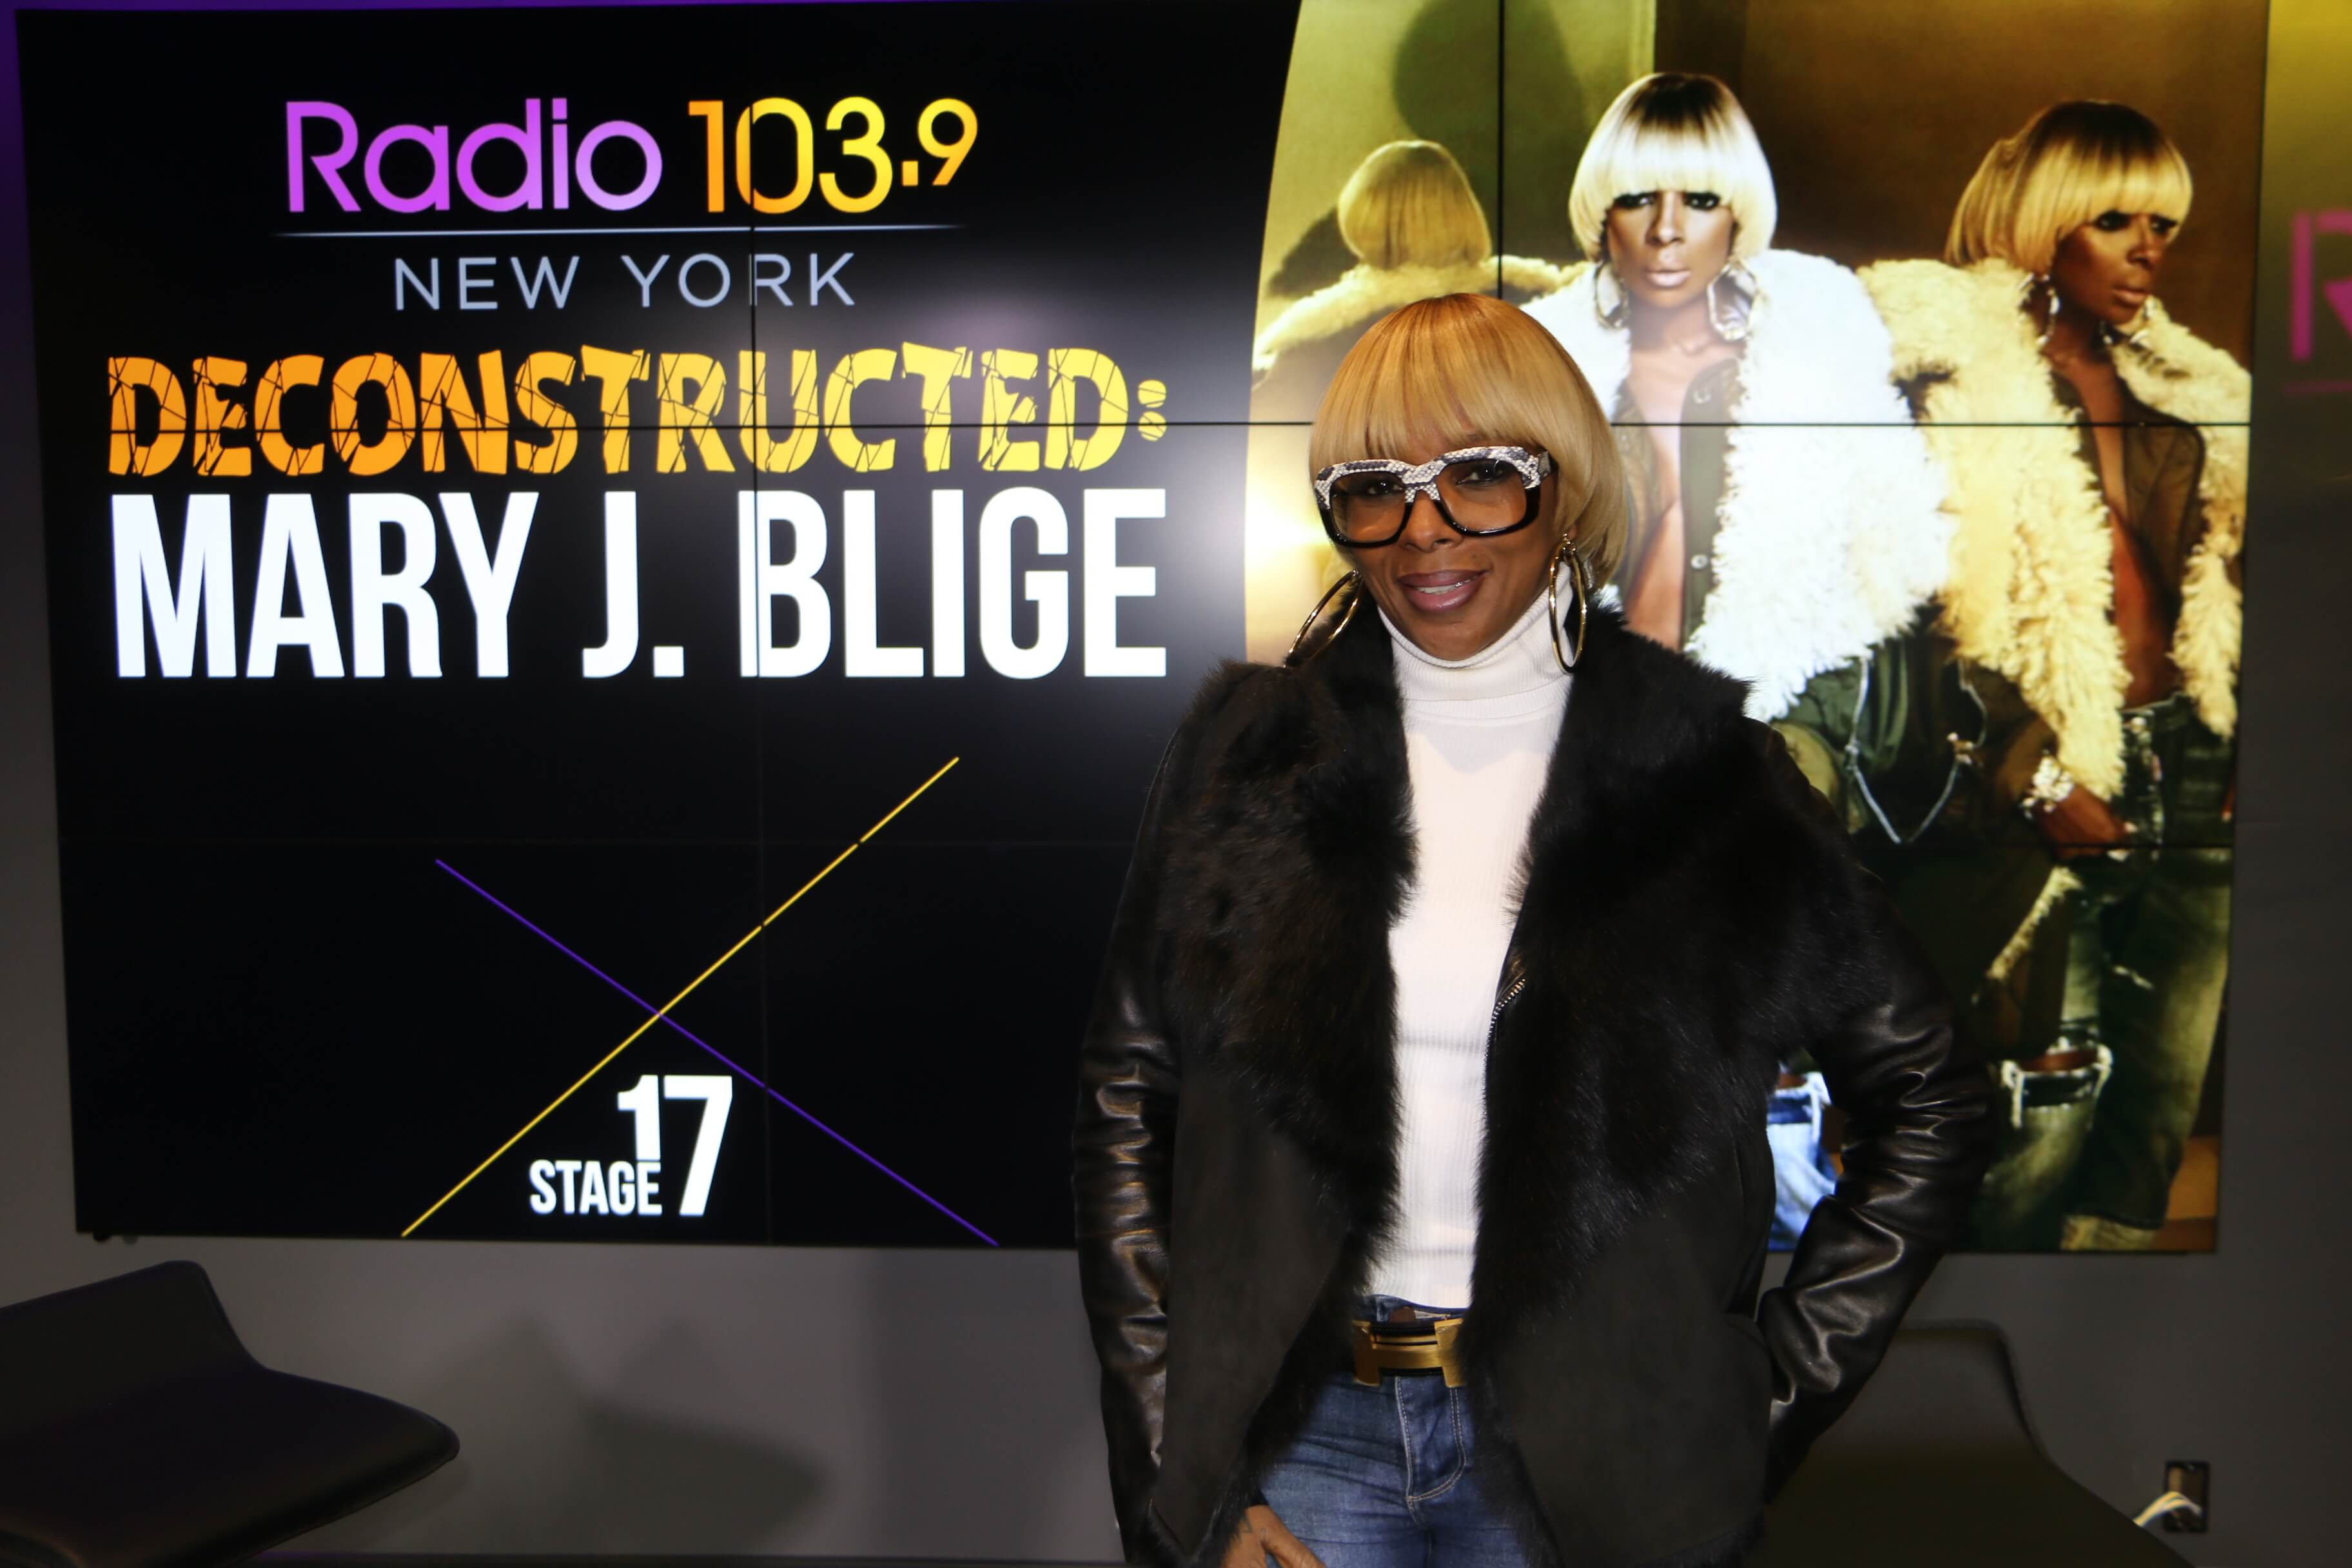 Deconstructed: Mary J. Blige